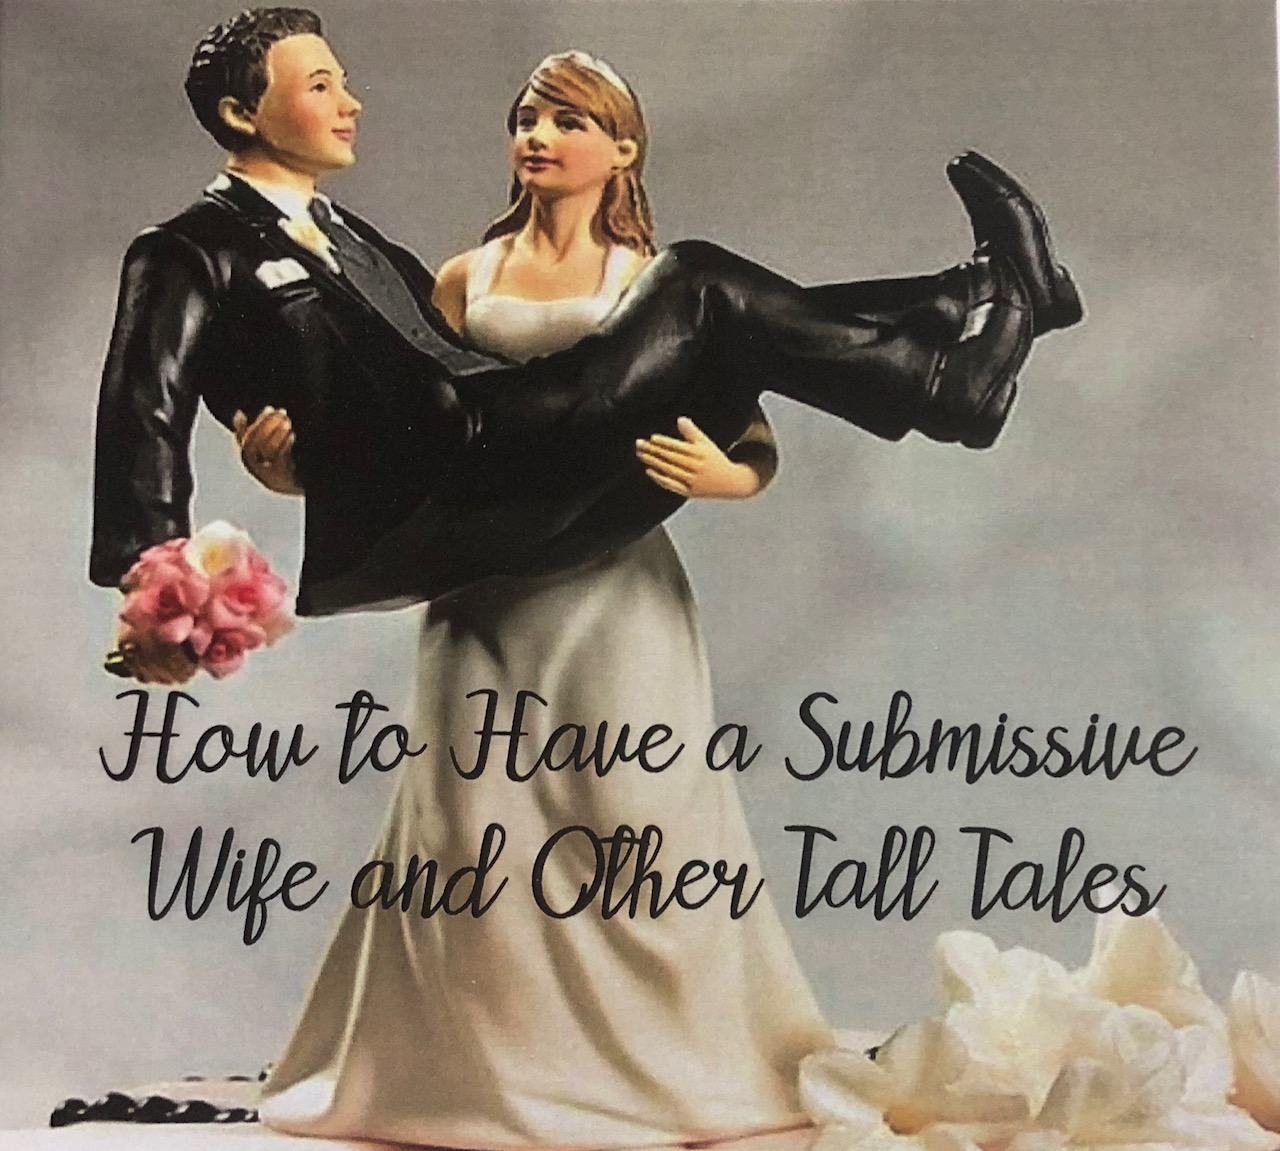 How to have a submissive wife and other tall tales!